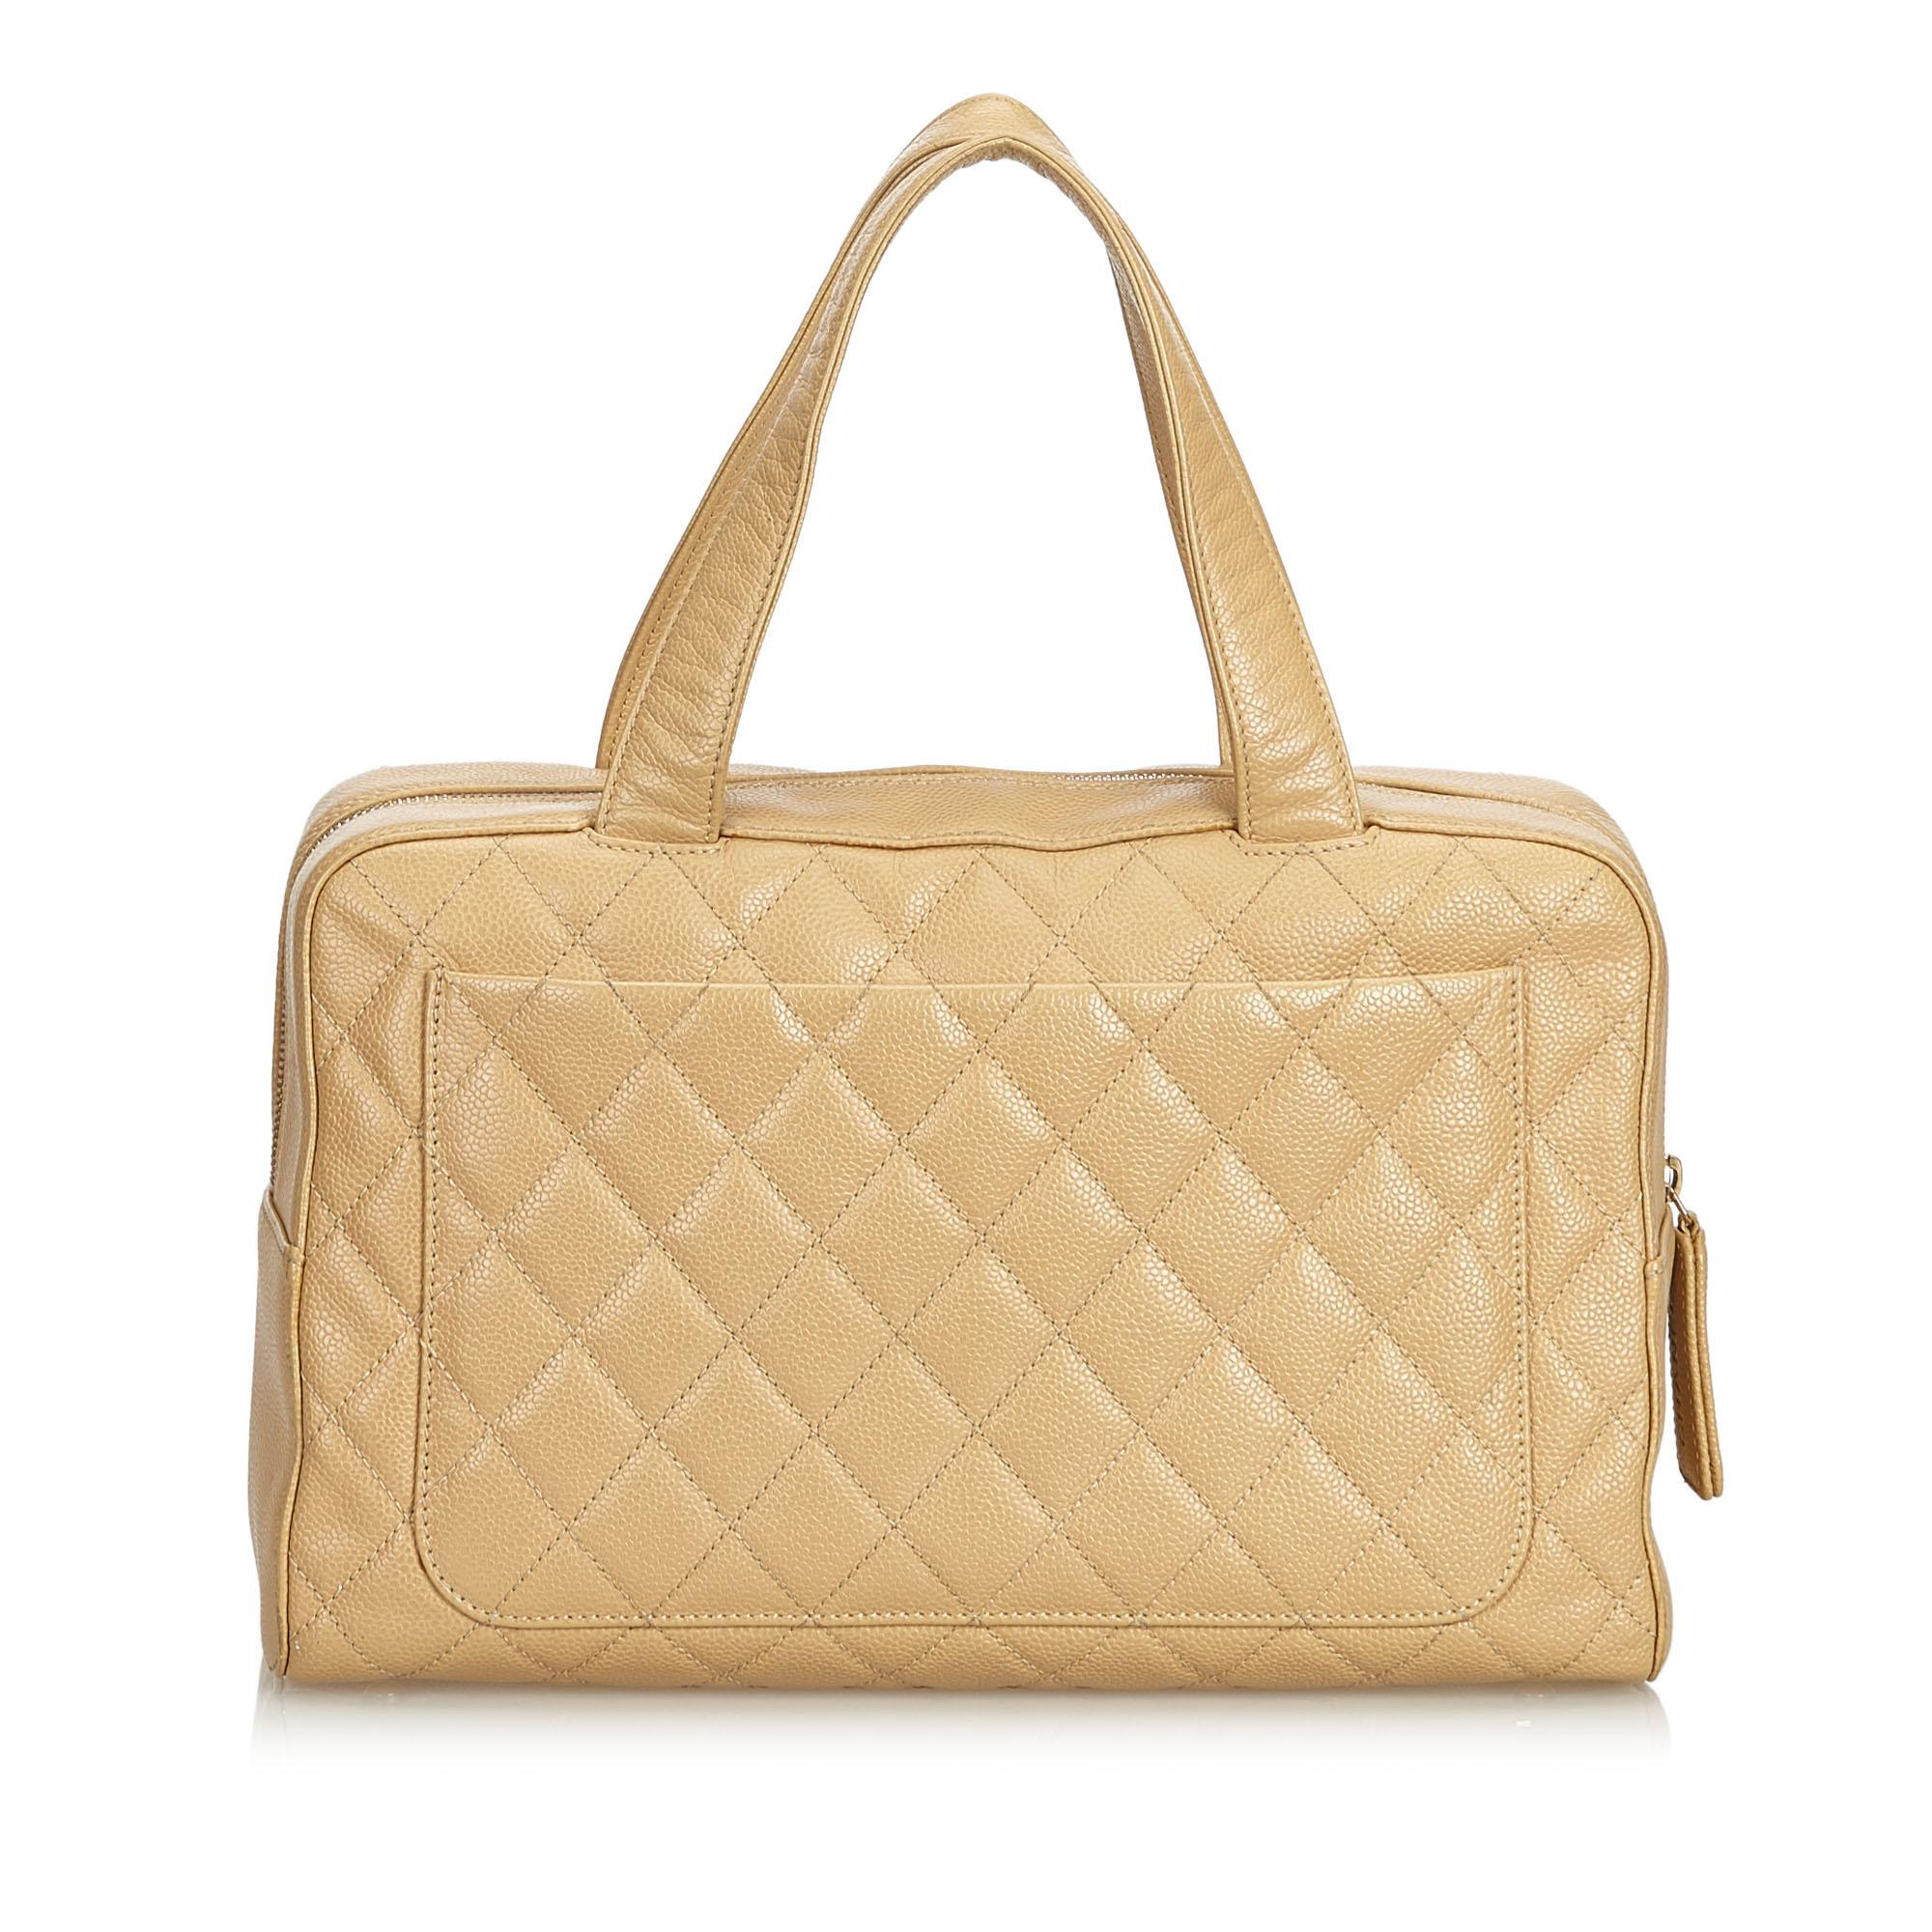 5cf98c0bfc324d Chanel Brown Quilted Caviar Boston Bag at 1stdibs